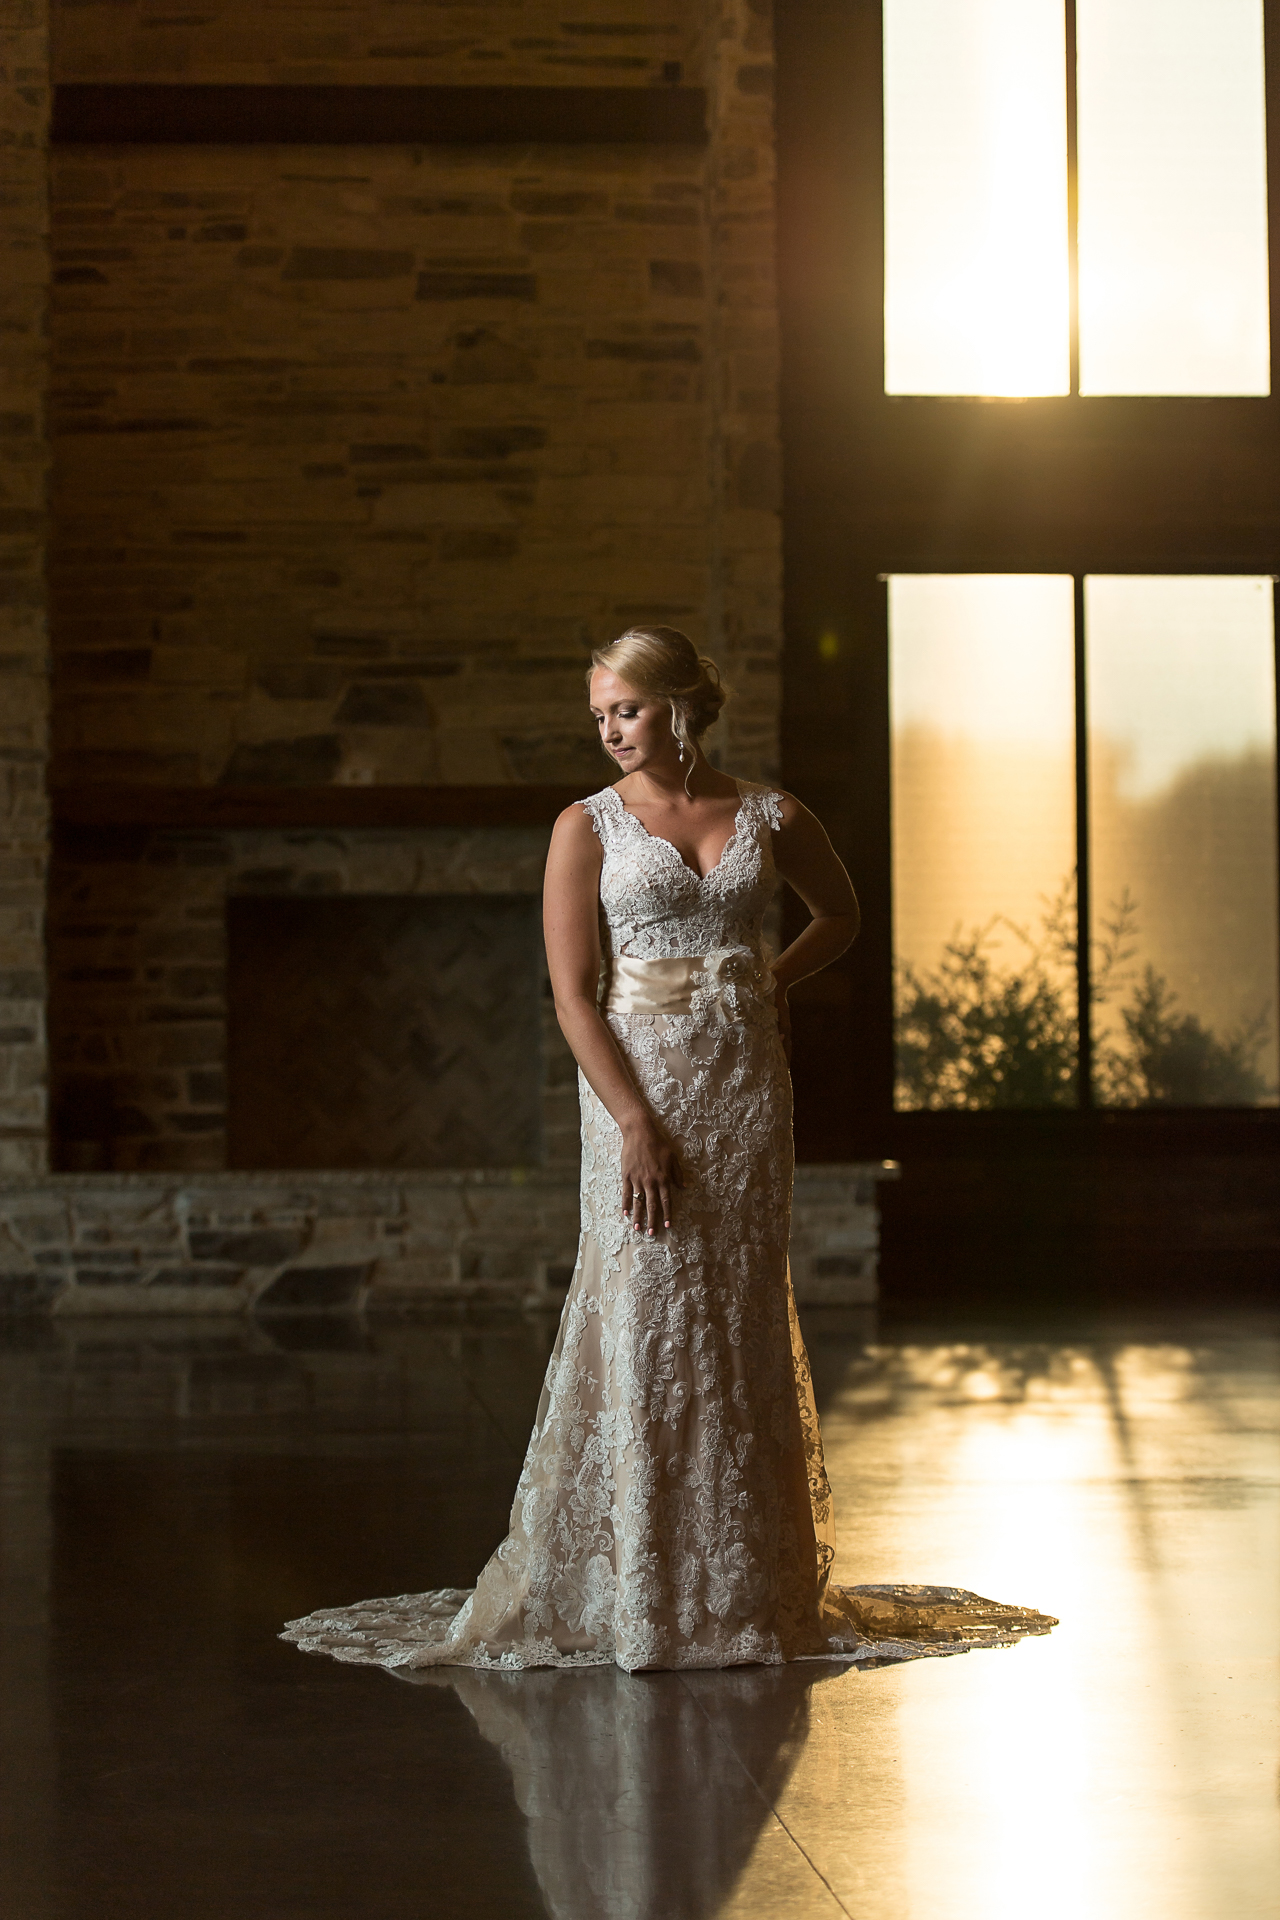 Natalie Roberson Bridal Photography